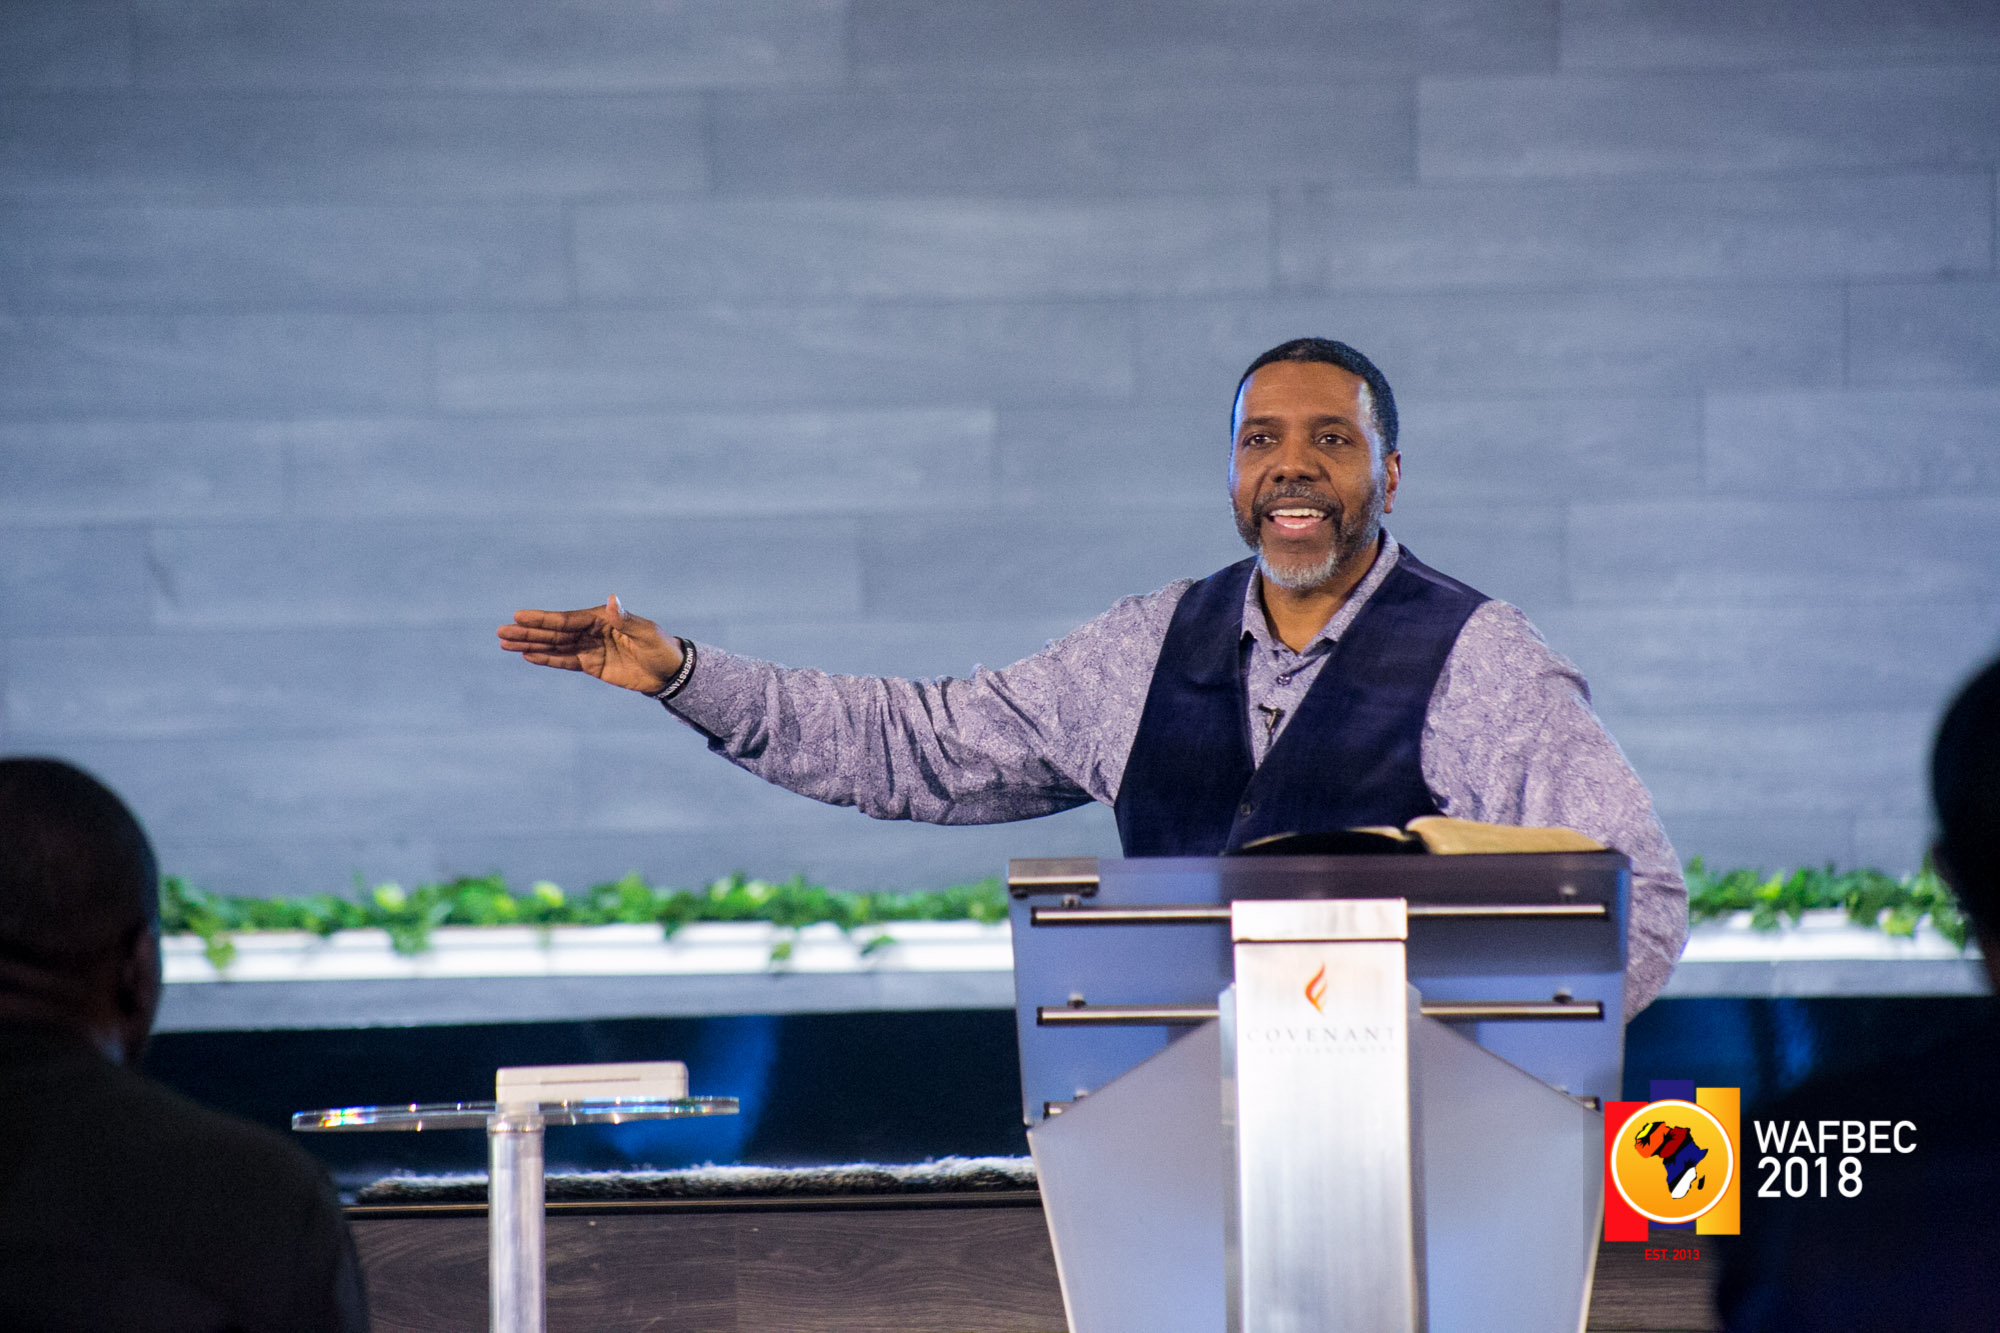 WAFBEC 2018 – Day 7 (Morning Session 1) with Dr. Creflo Dollar